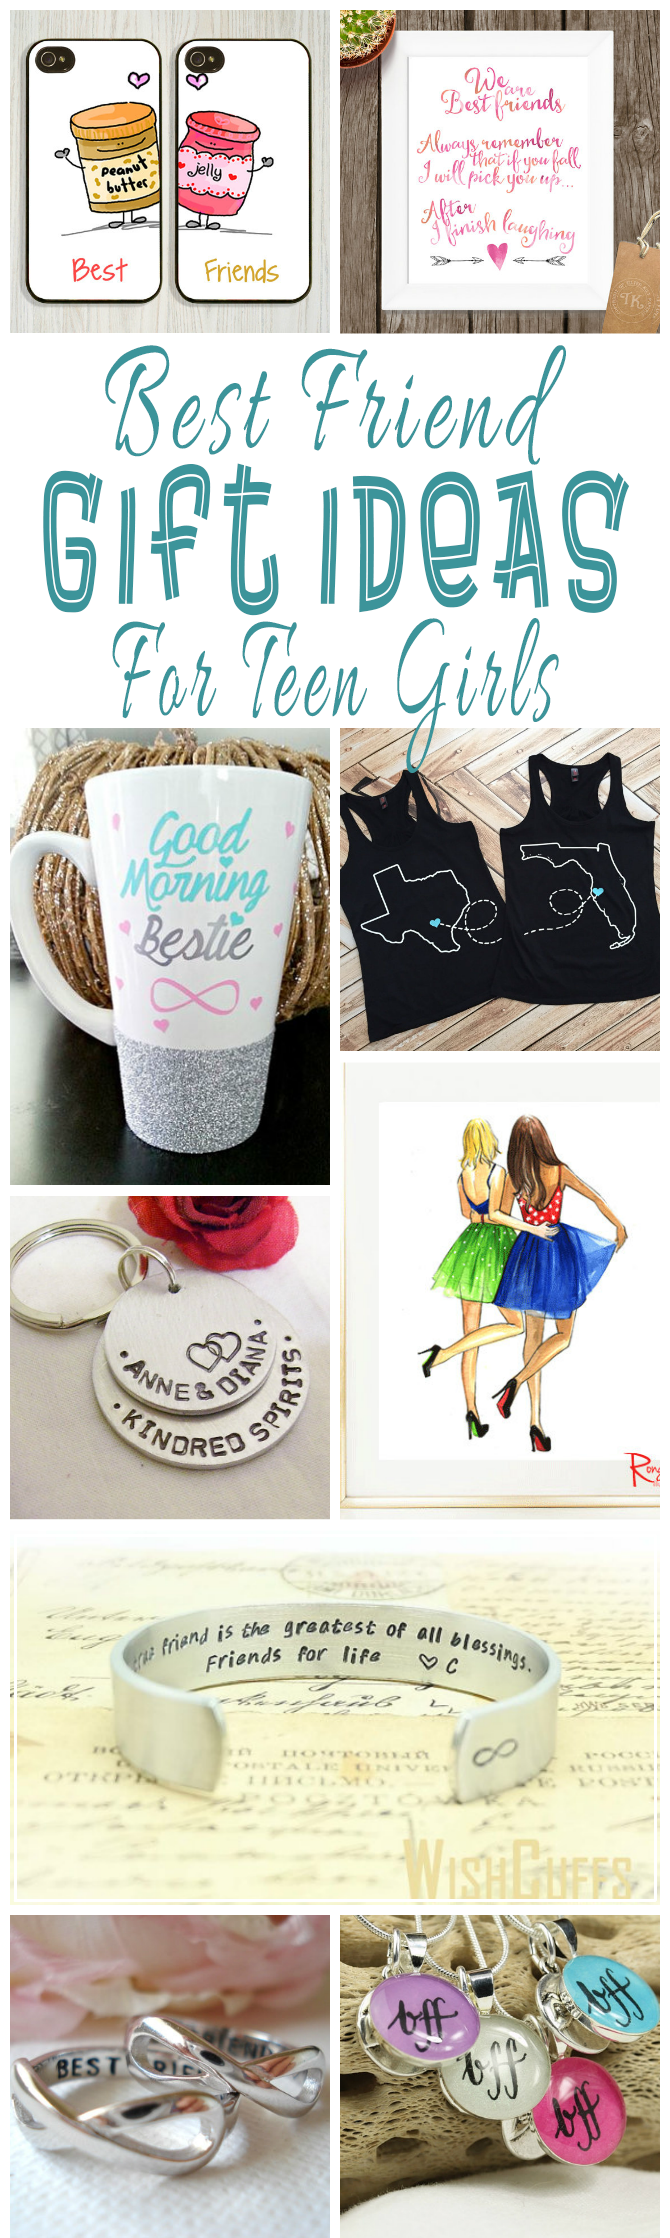 Best Friend Gift Ideas For Teens